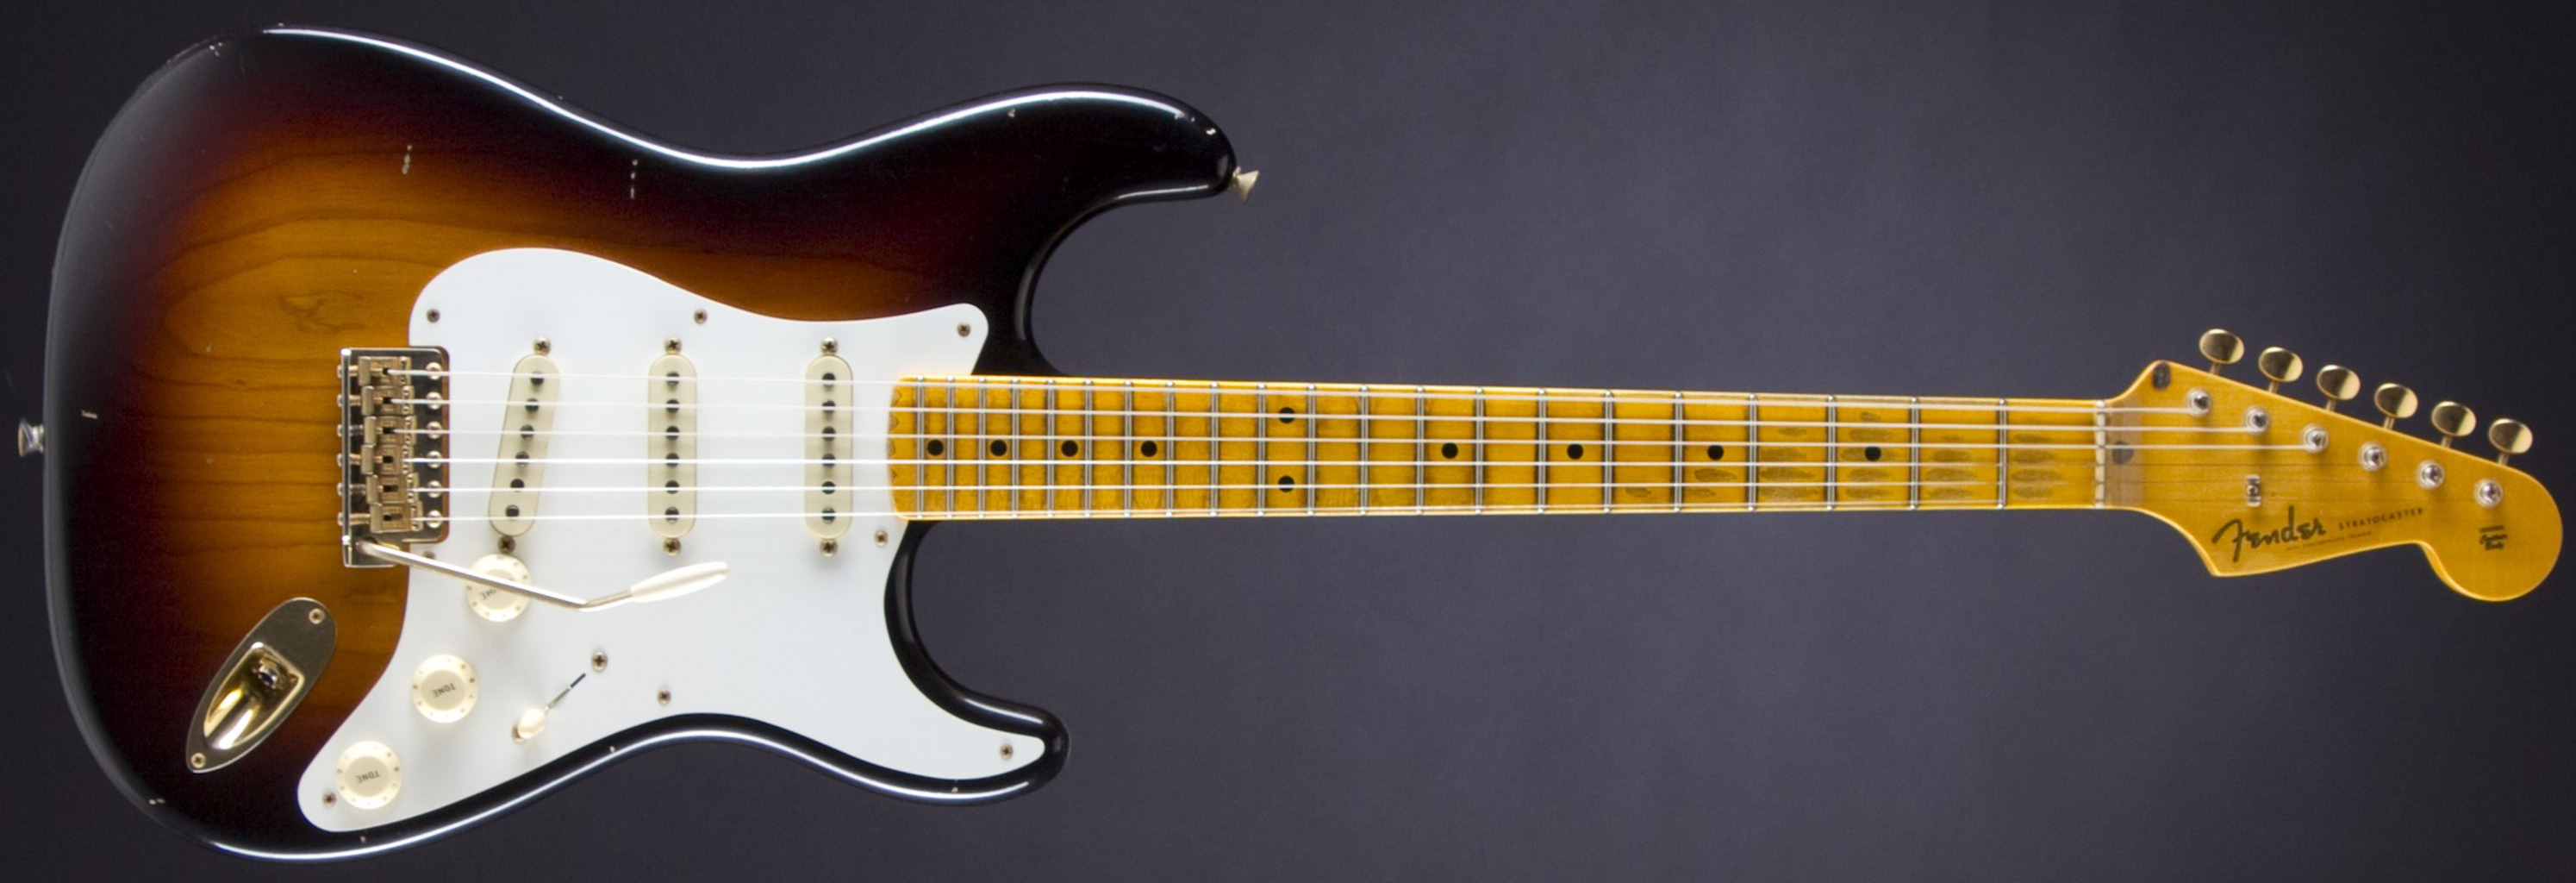 FENDER 20th Anniversary Relic Stratocaster Faded 2-Tone Sunburst #R84111